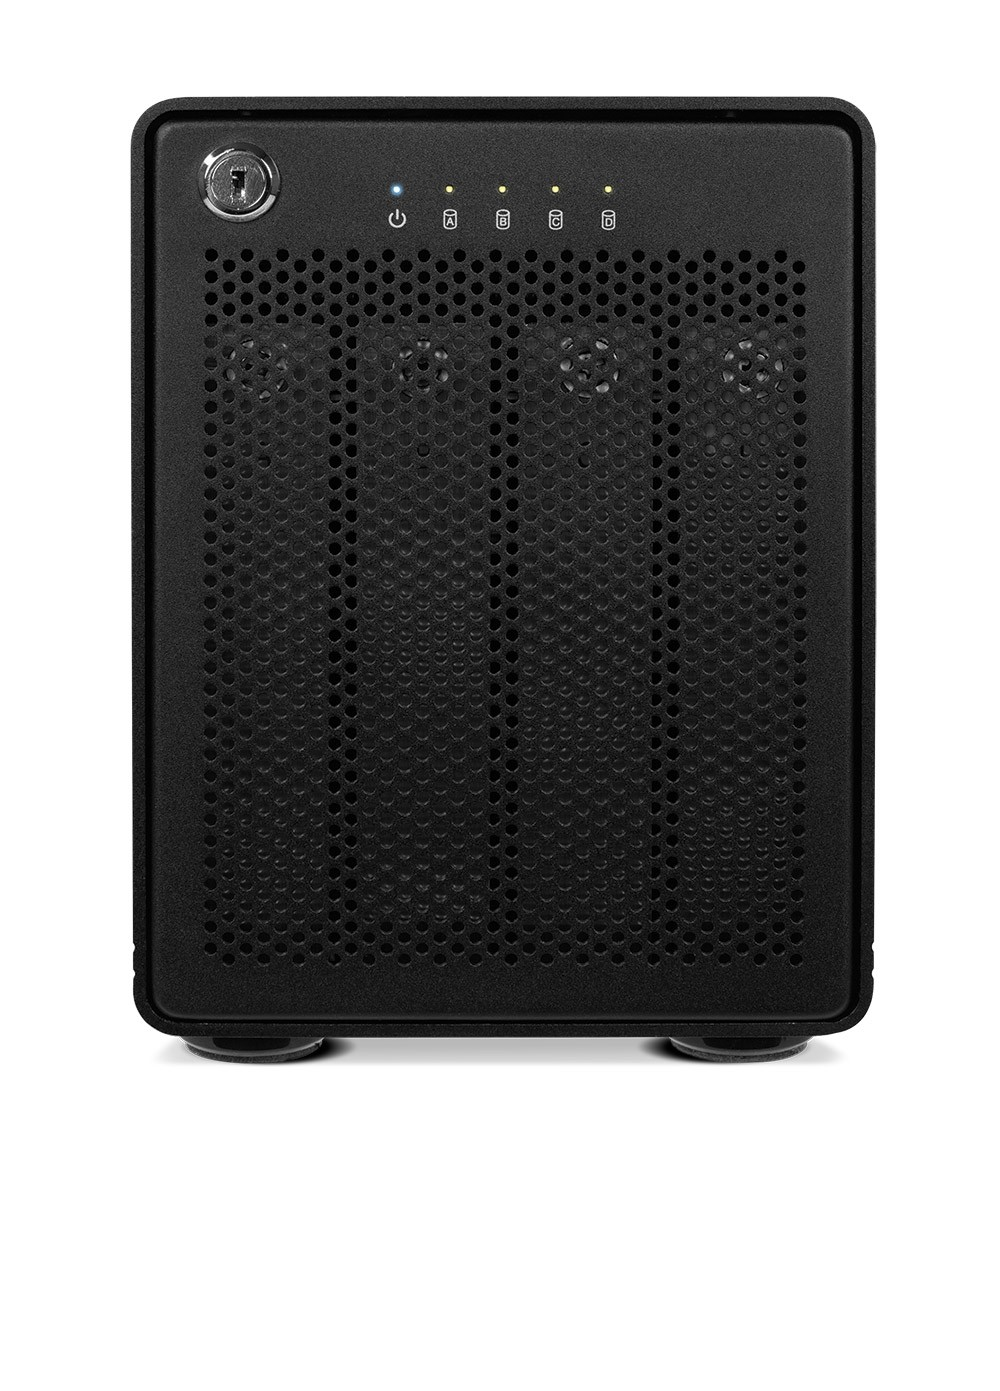 56TB OWC ThunderBay 4 RAID 5 4-Drive Enterprise HDD Storage Solution with Dual Thunderbolt 2 Ports, OWCTB2SRE56.0S